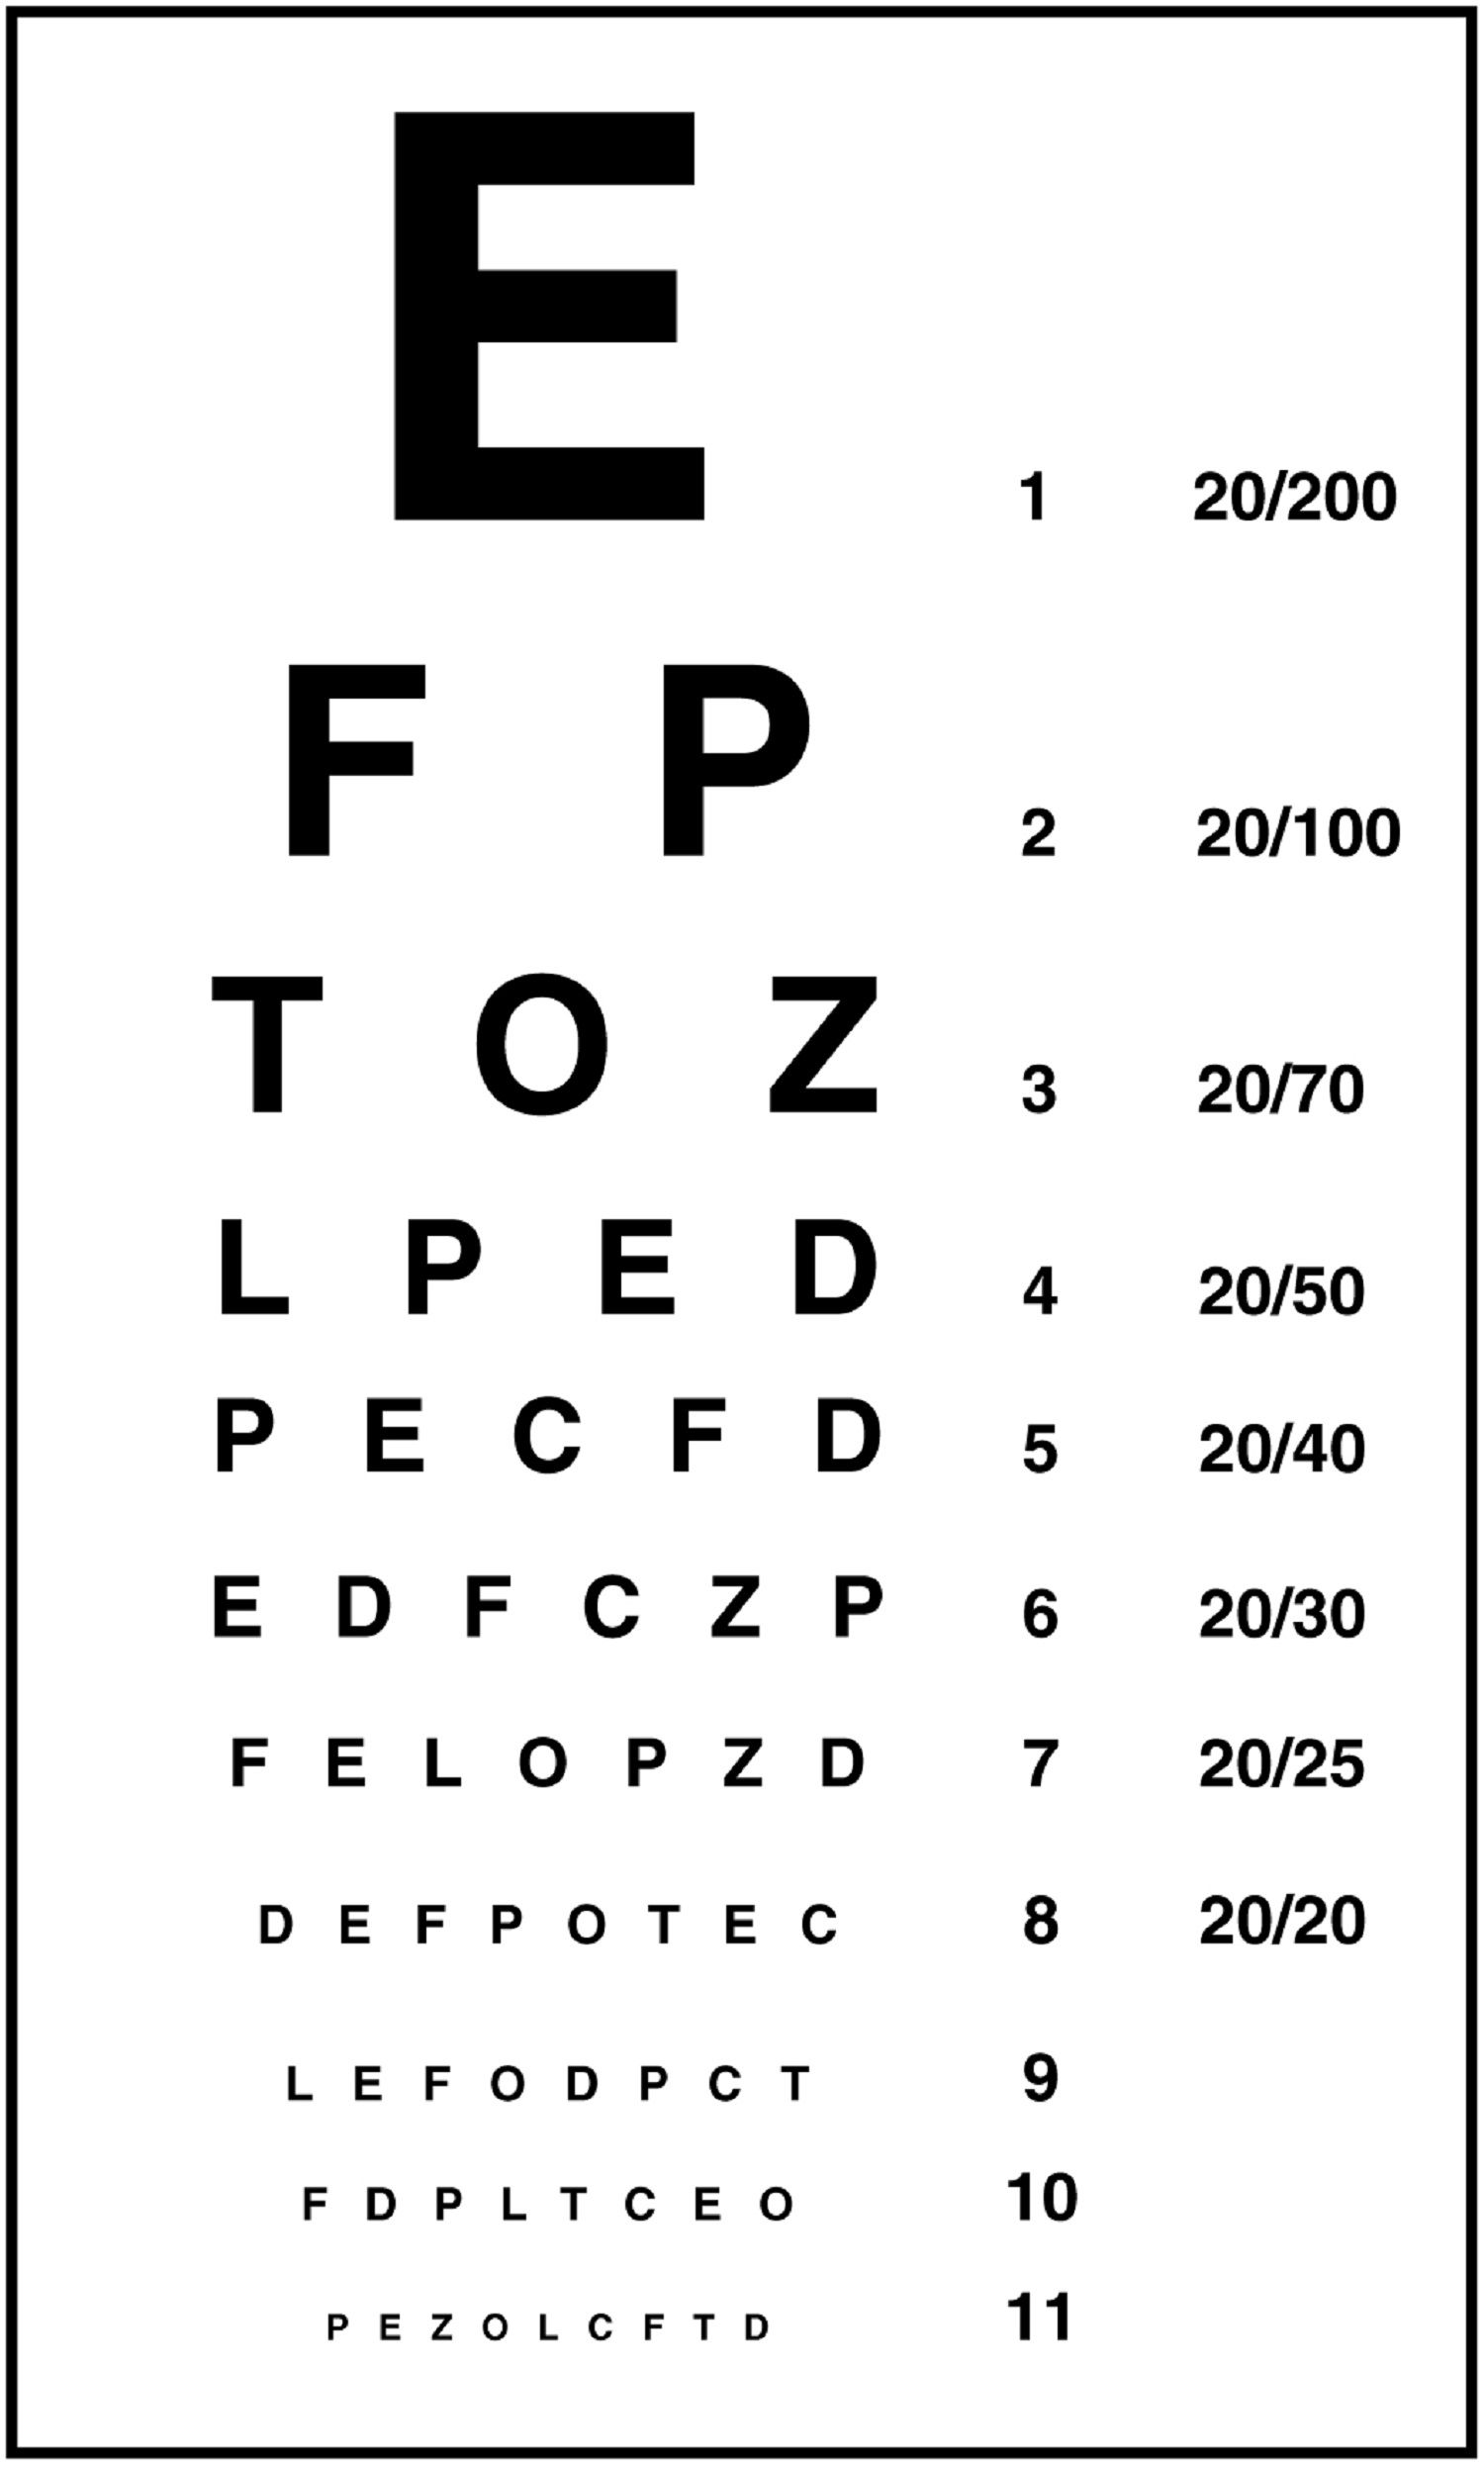 It's just a photo of Unusual Printable Vision Test